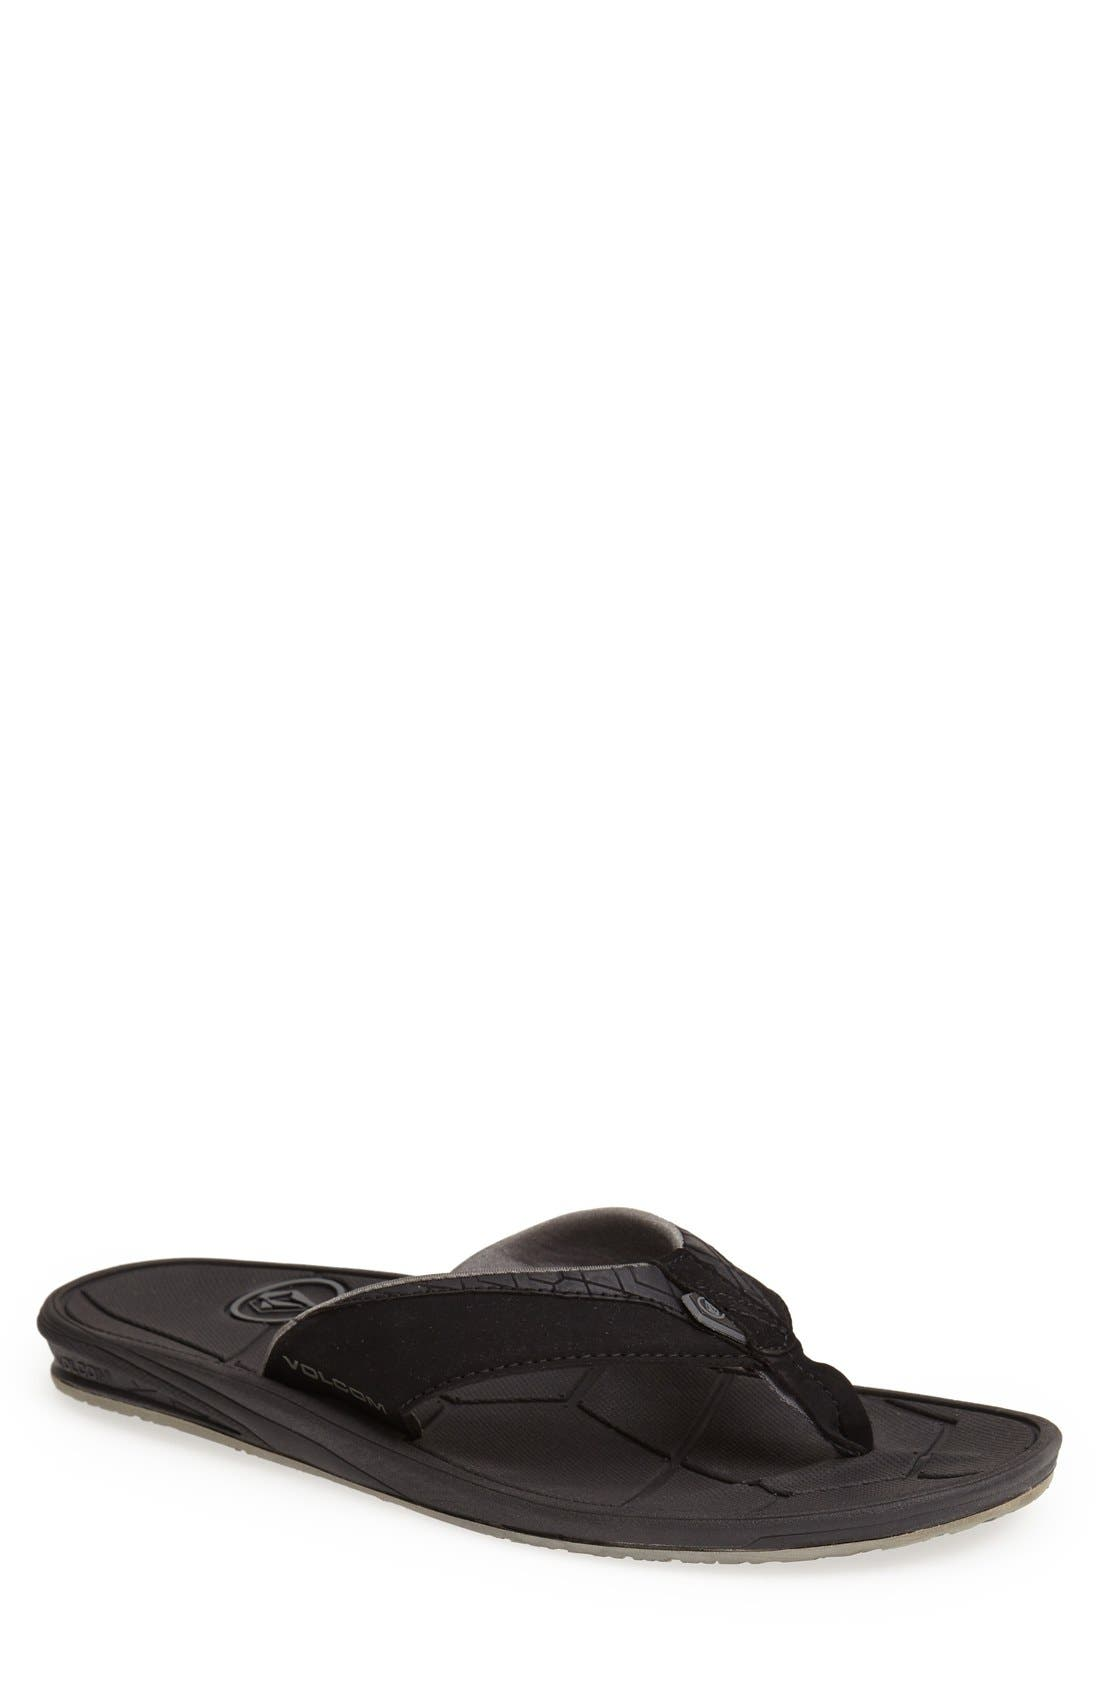 Alternate Image 1 Selected - Volcom 'Rift' Flip Flop (Men)